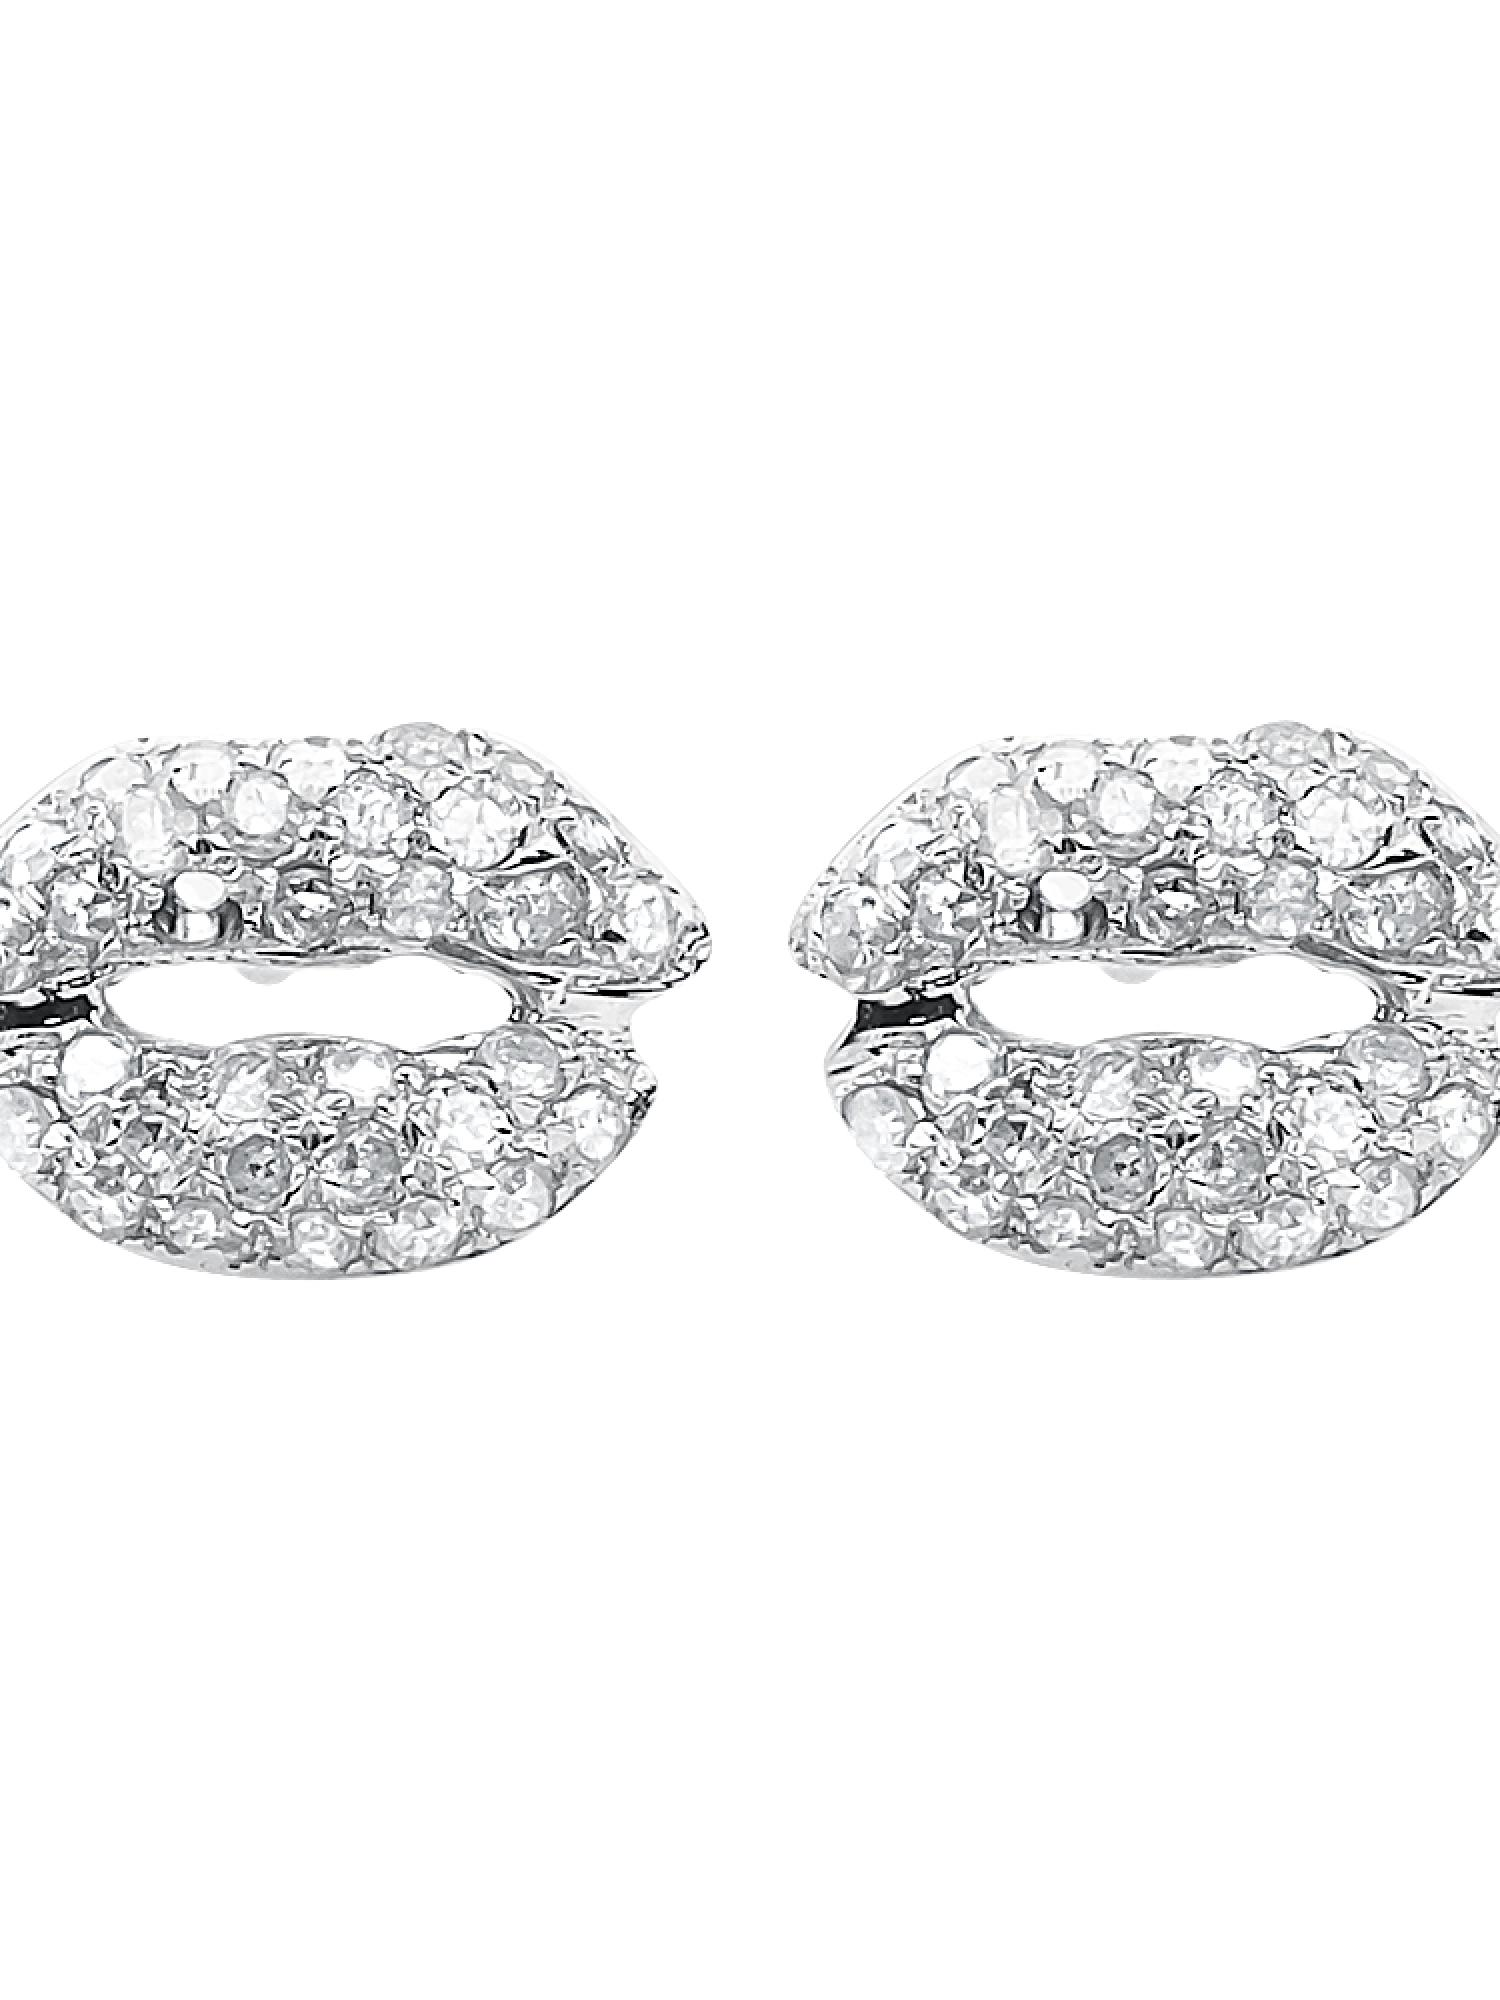 Jewelry Unlimited Diamond Earrings Walmart Com